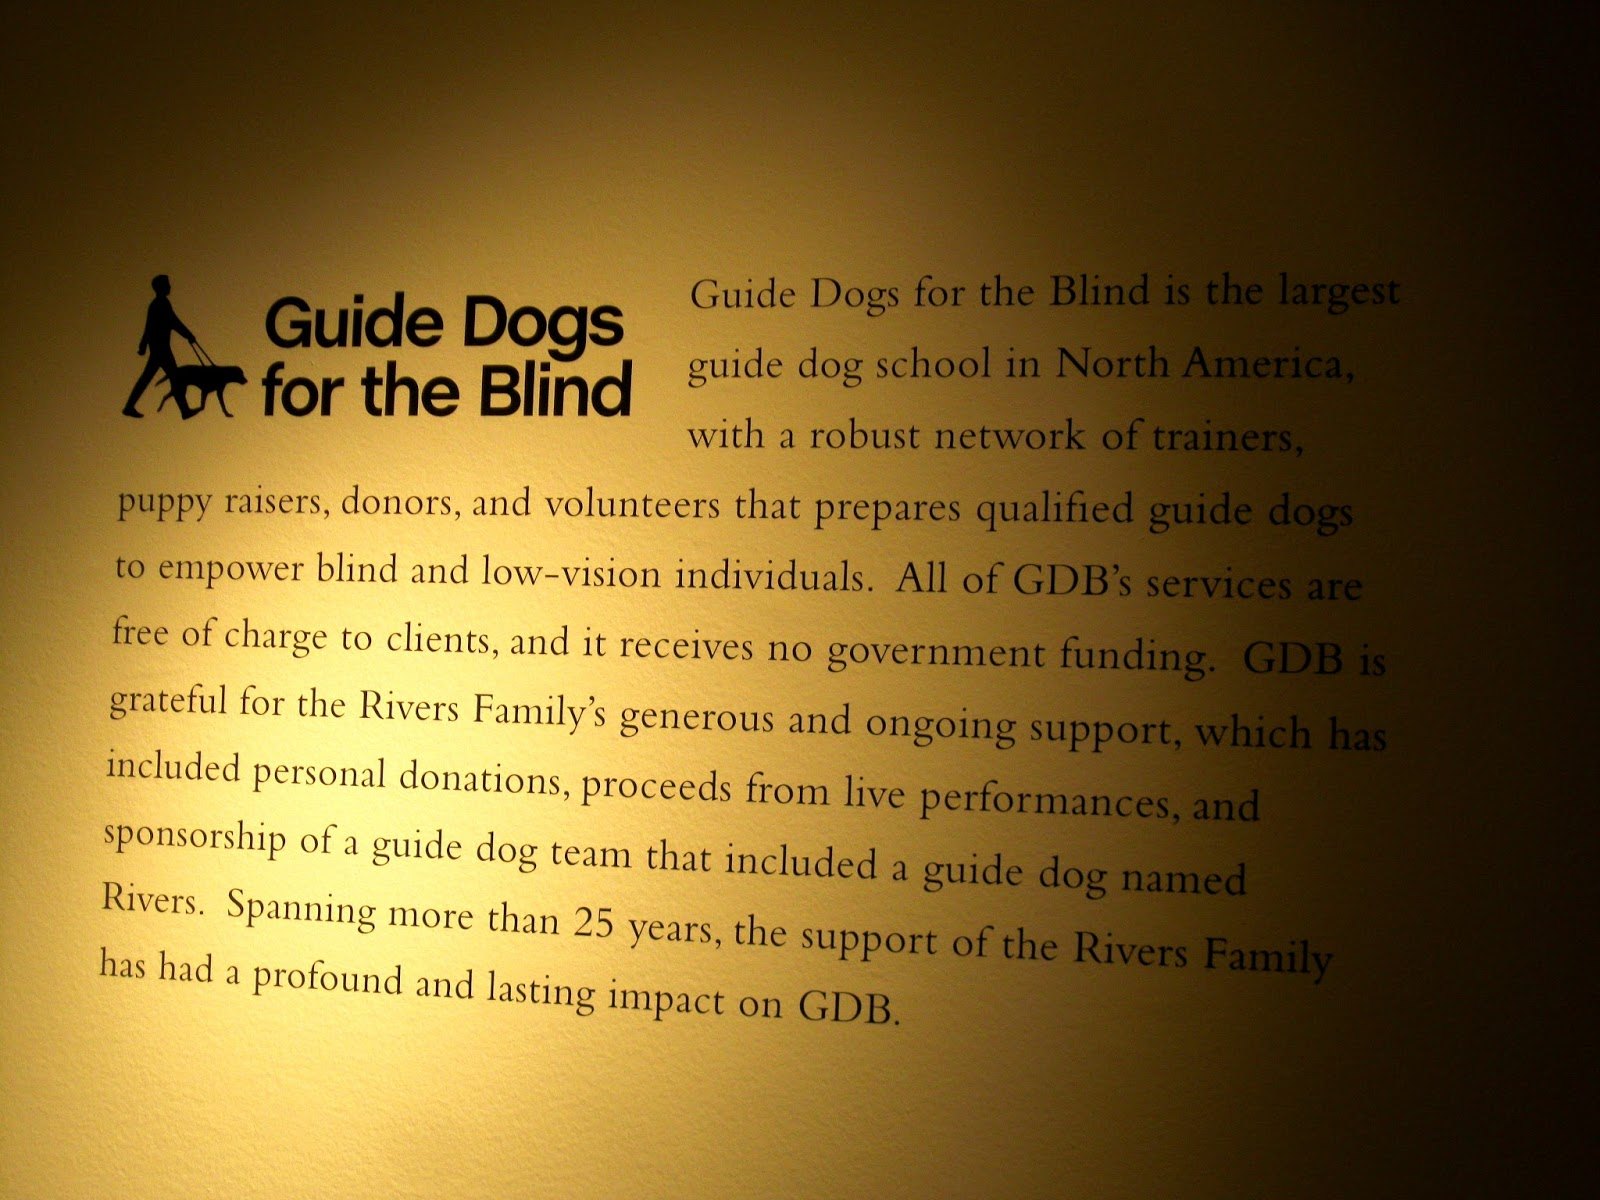 Guide Dogs for the Blind on Joan Rivers' charitable acts [photo/edit by sookietex]